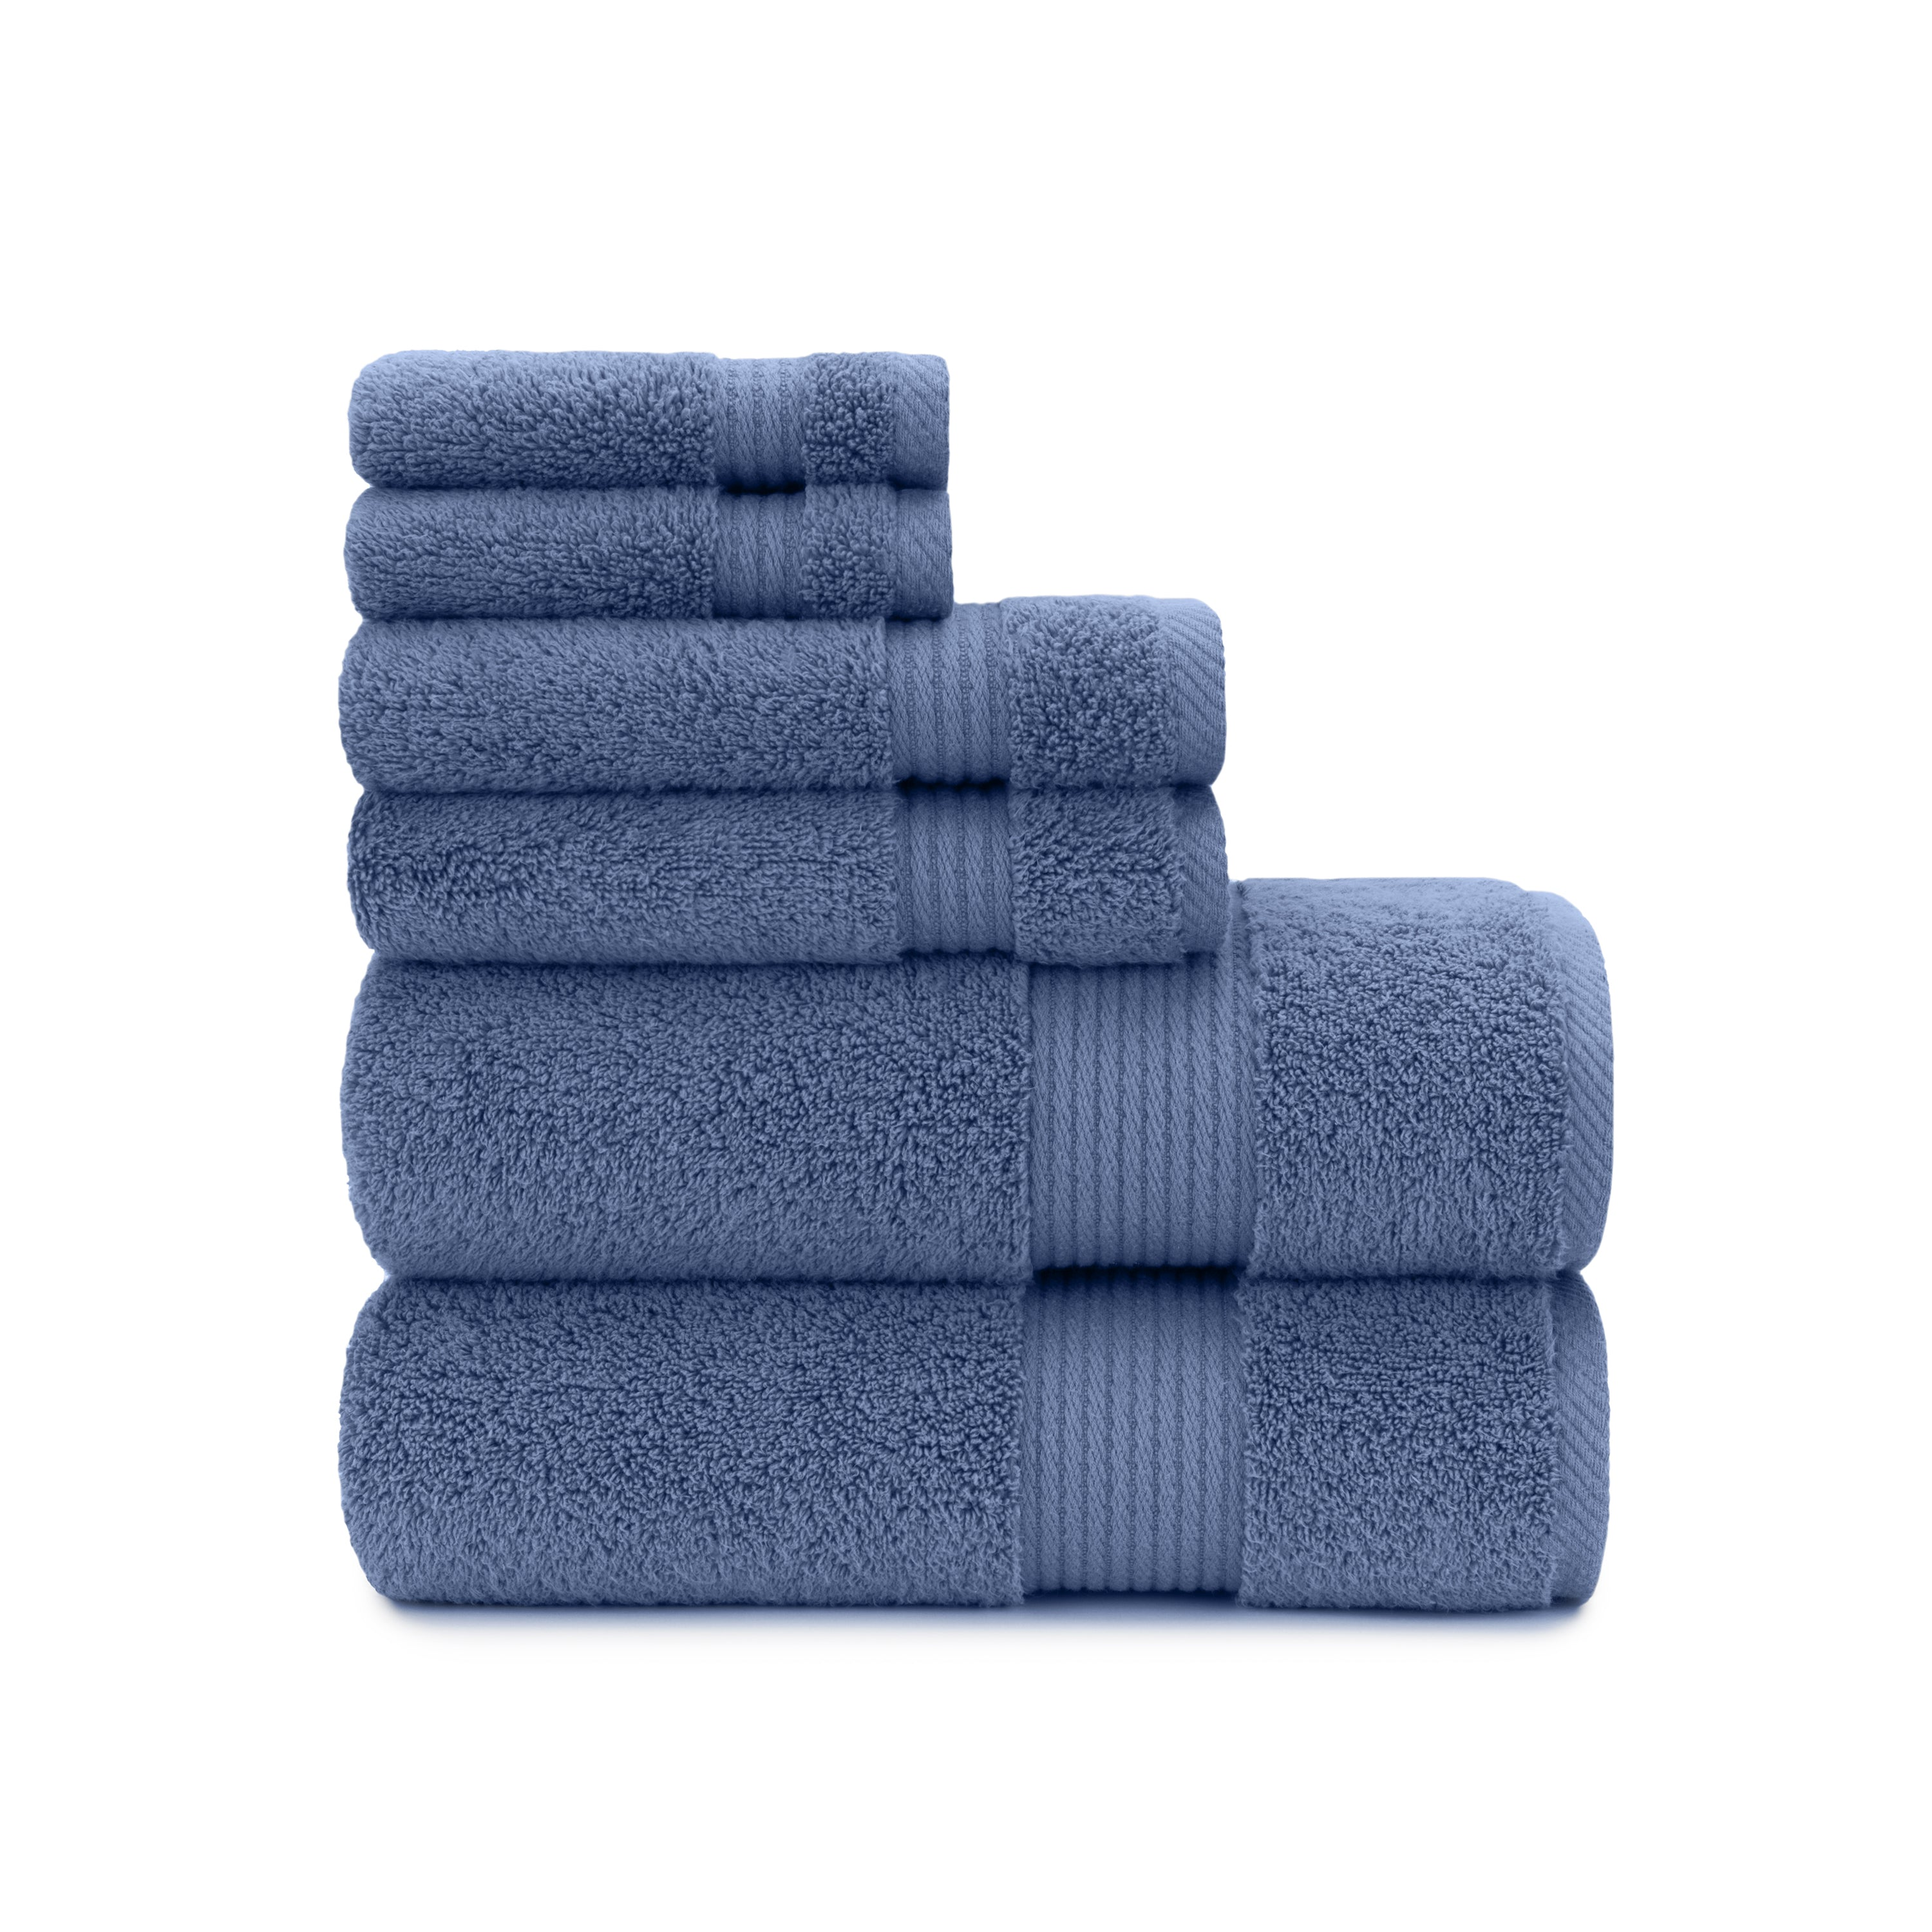 100% Cotton, Highly-Imbibing, Soft Hotel & Spa Towel Set in Blue ...